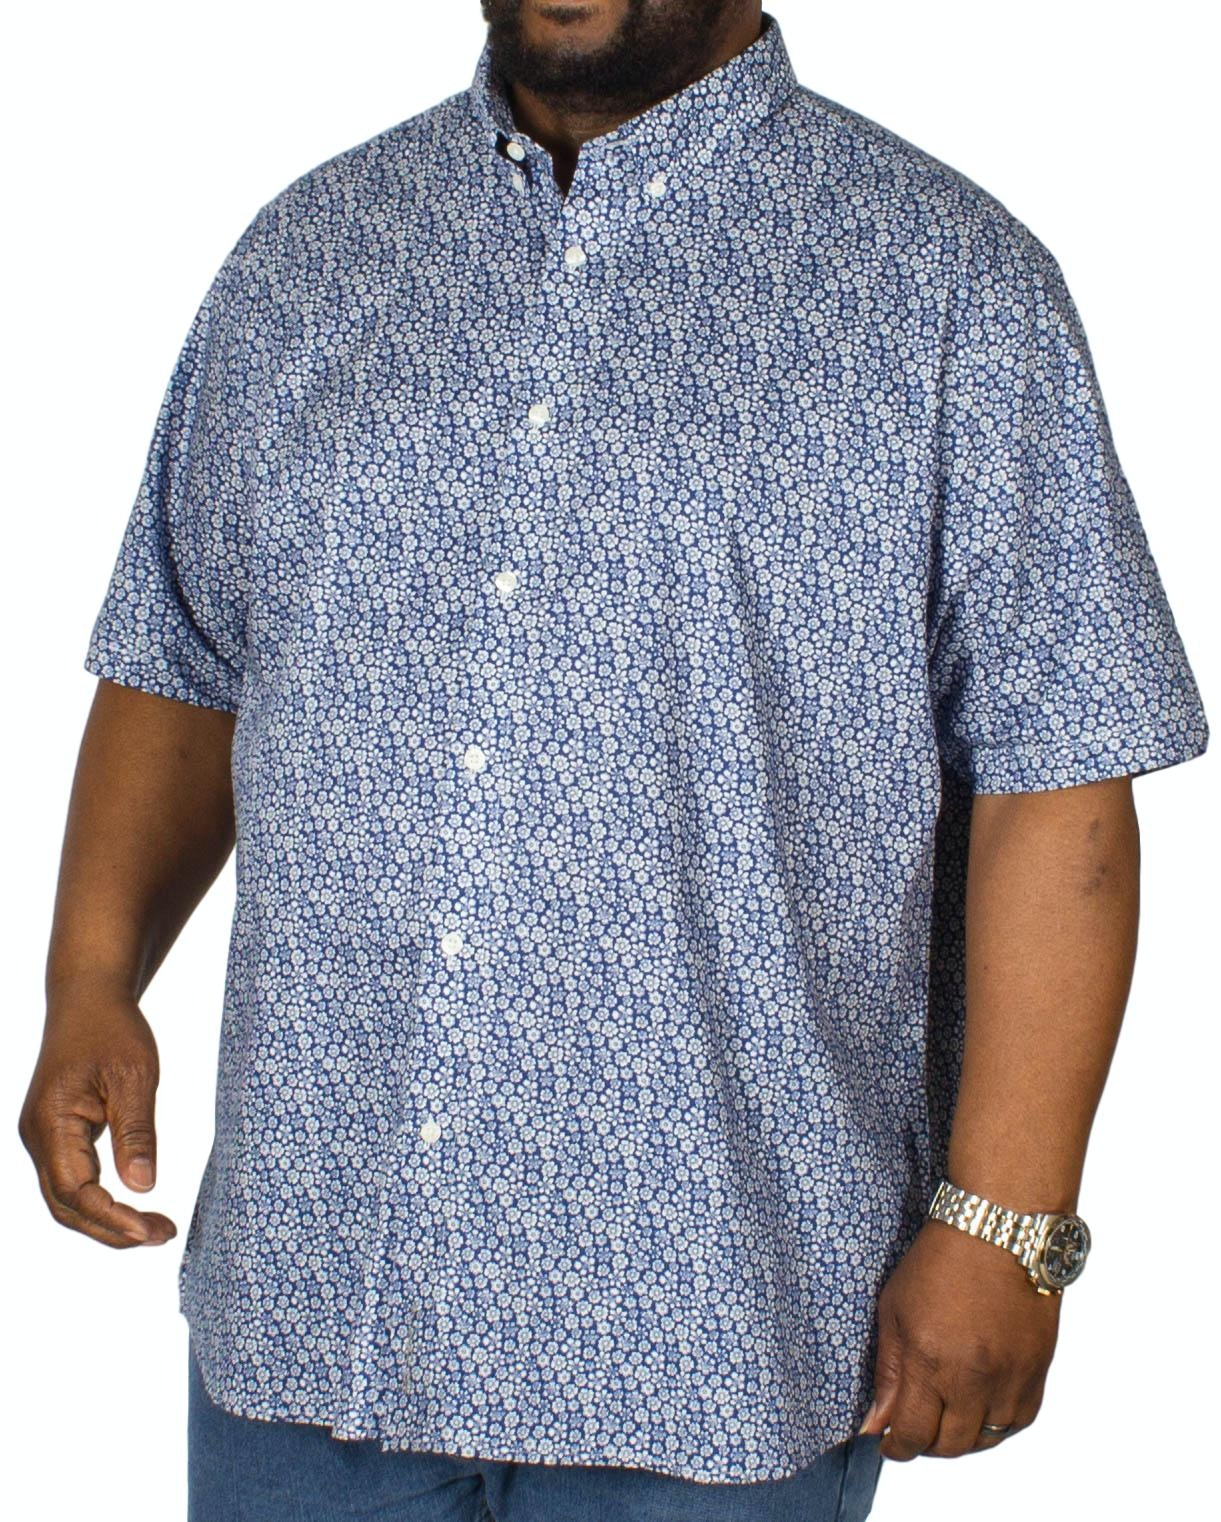 Ben Sherman Floral Print Short Sleeve Shirt Blue